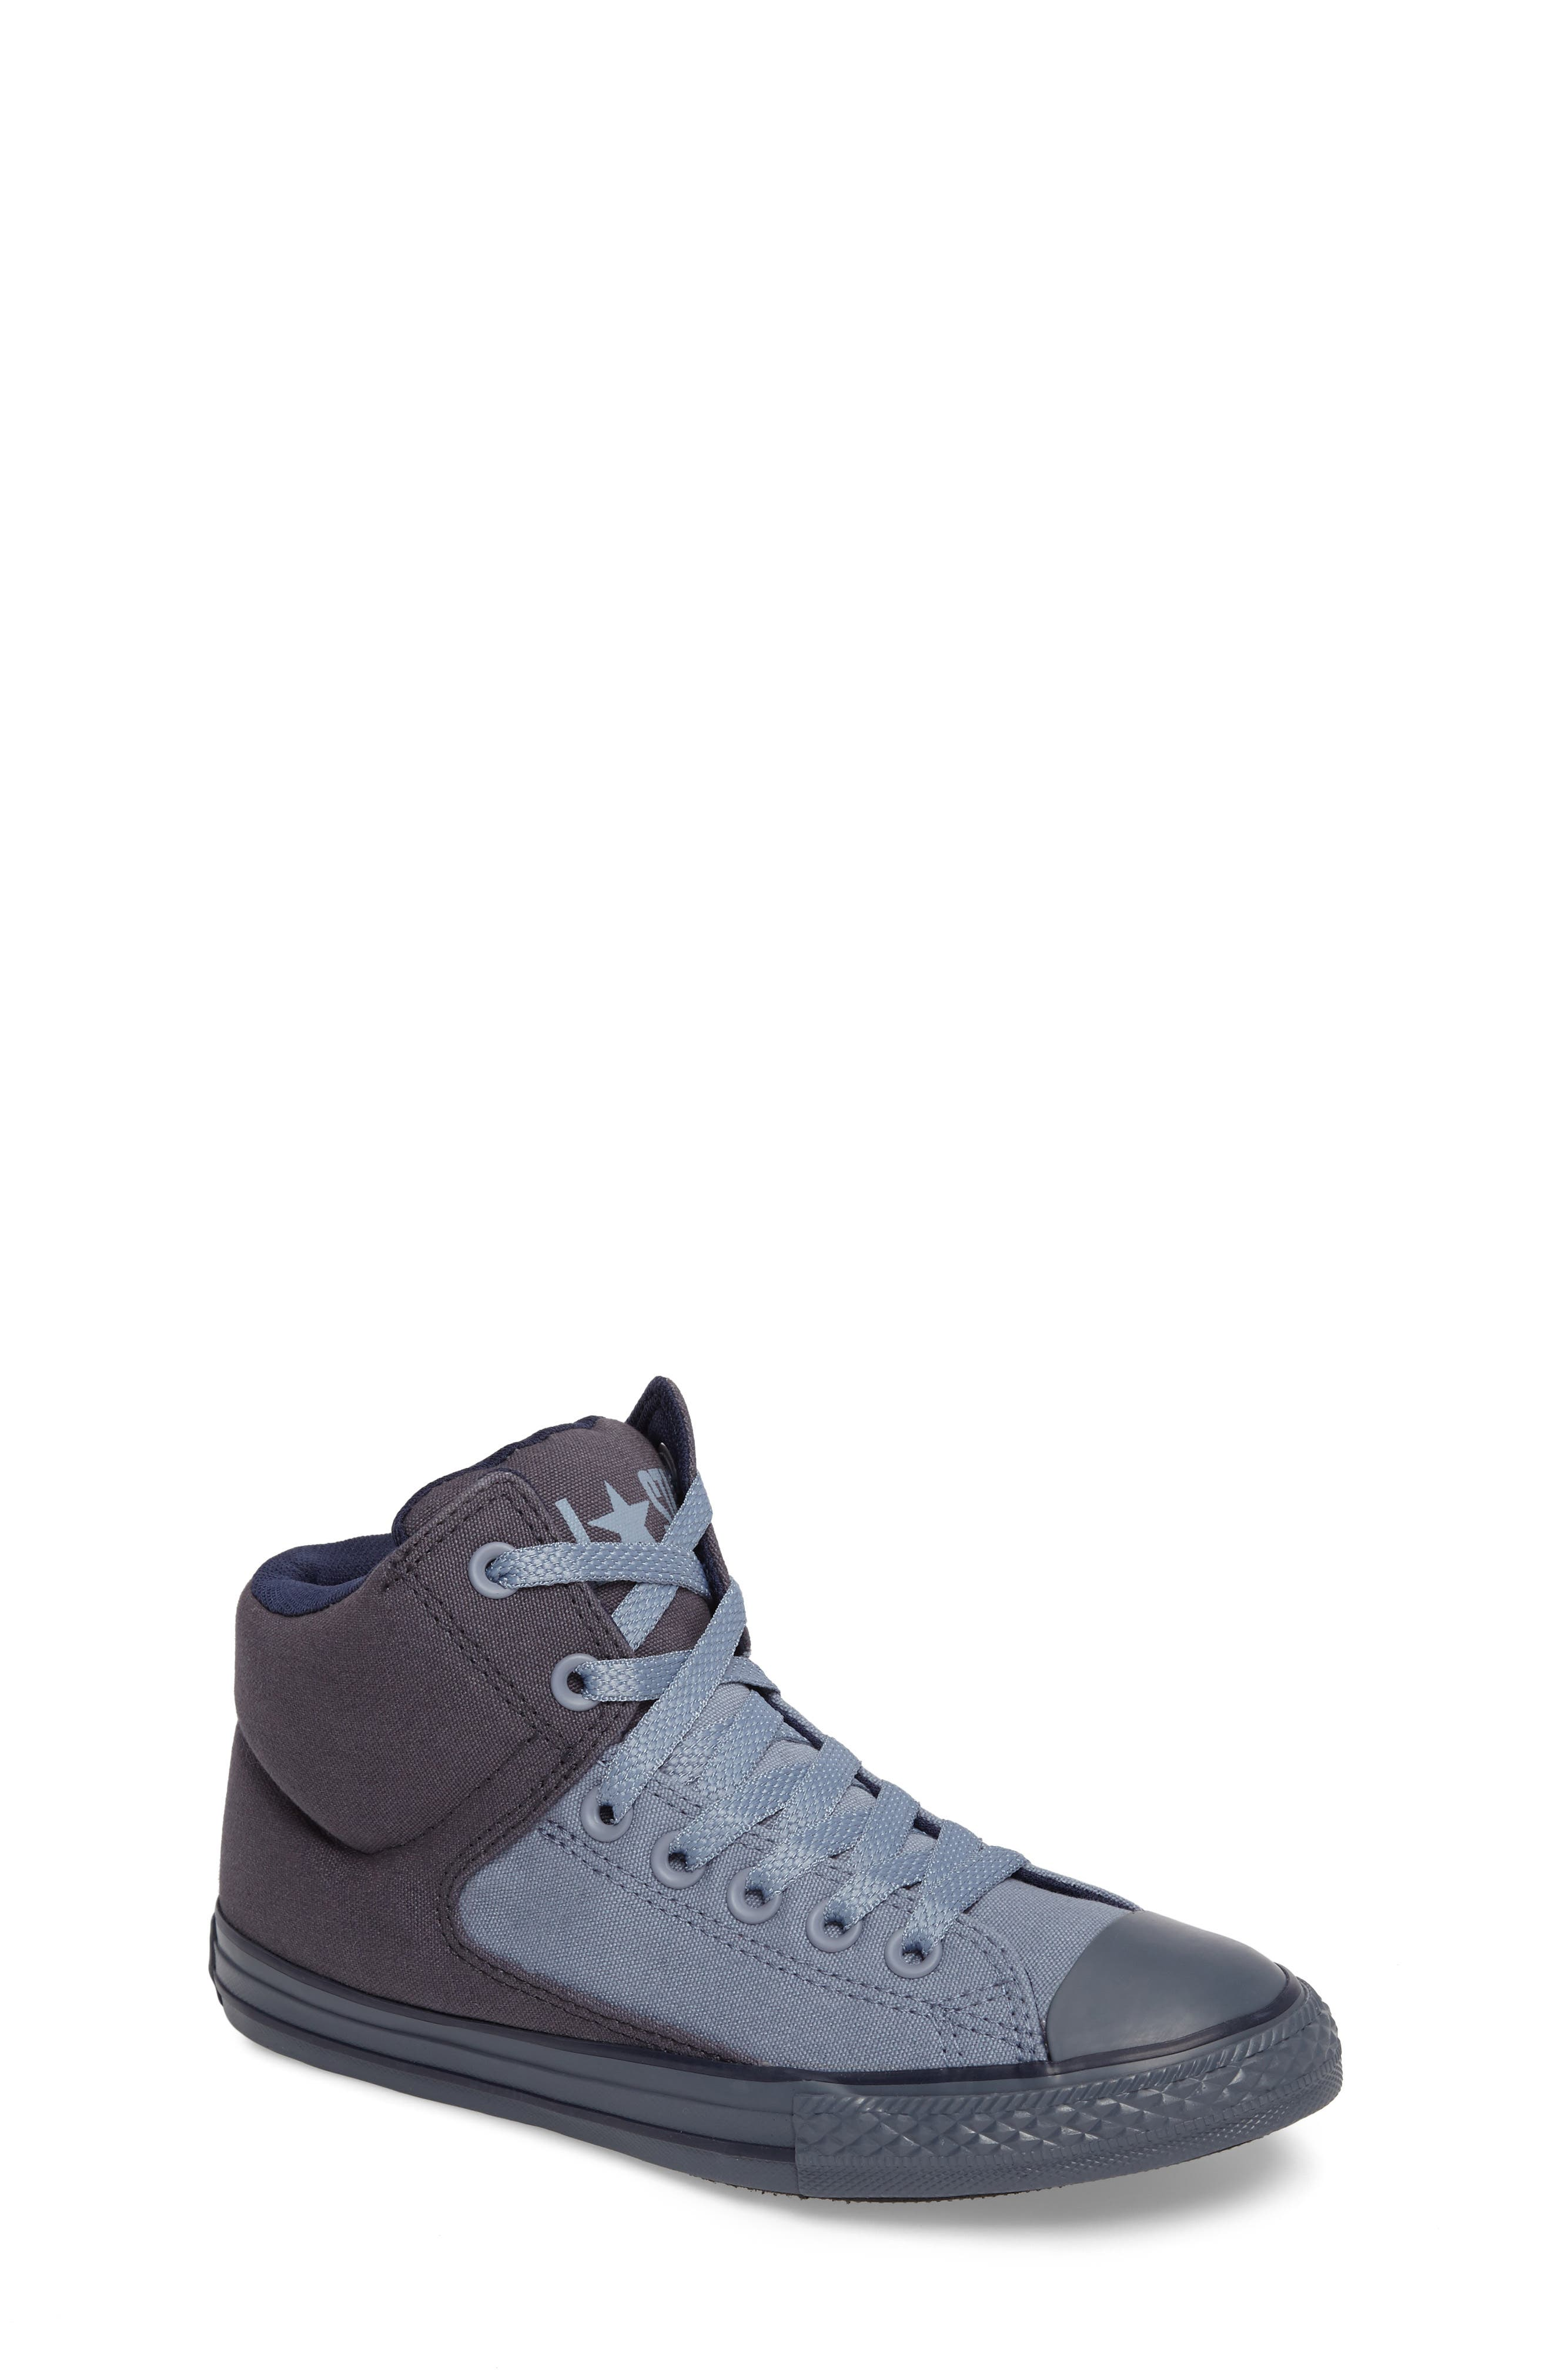 Chuck Taylor<sup>®</sup> All Star<sup>®</sup> High Street High Top Sneaker,                         Main,                         color, 400